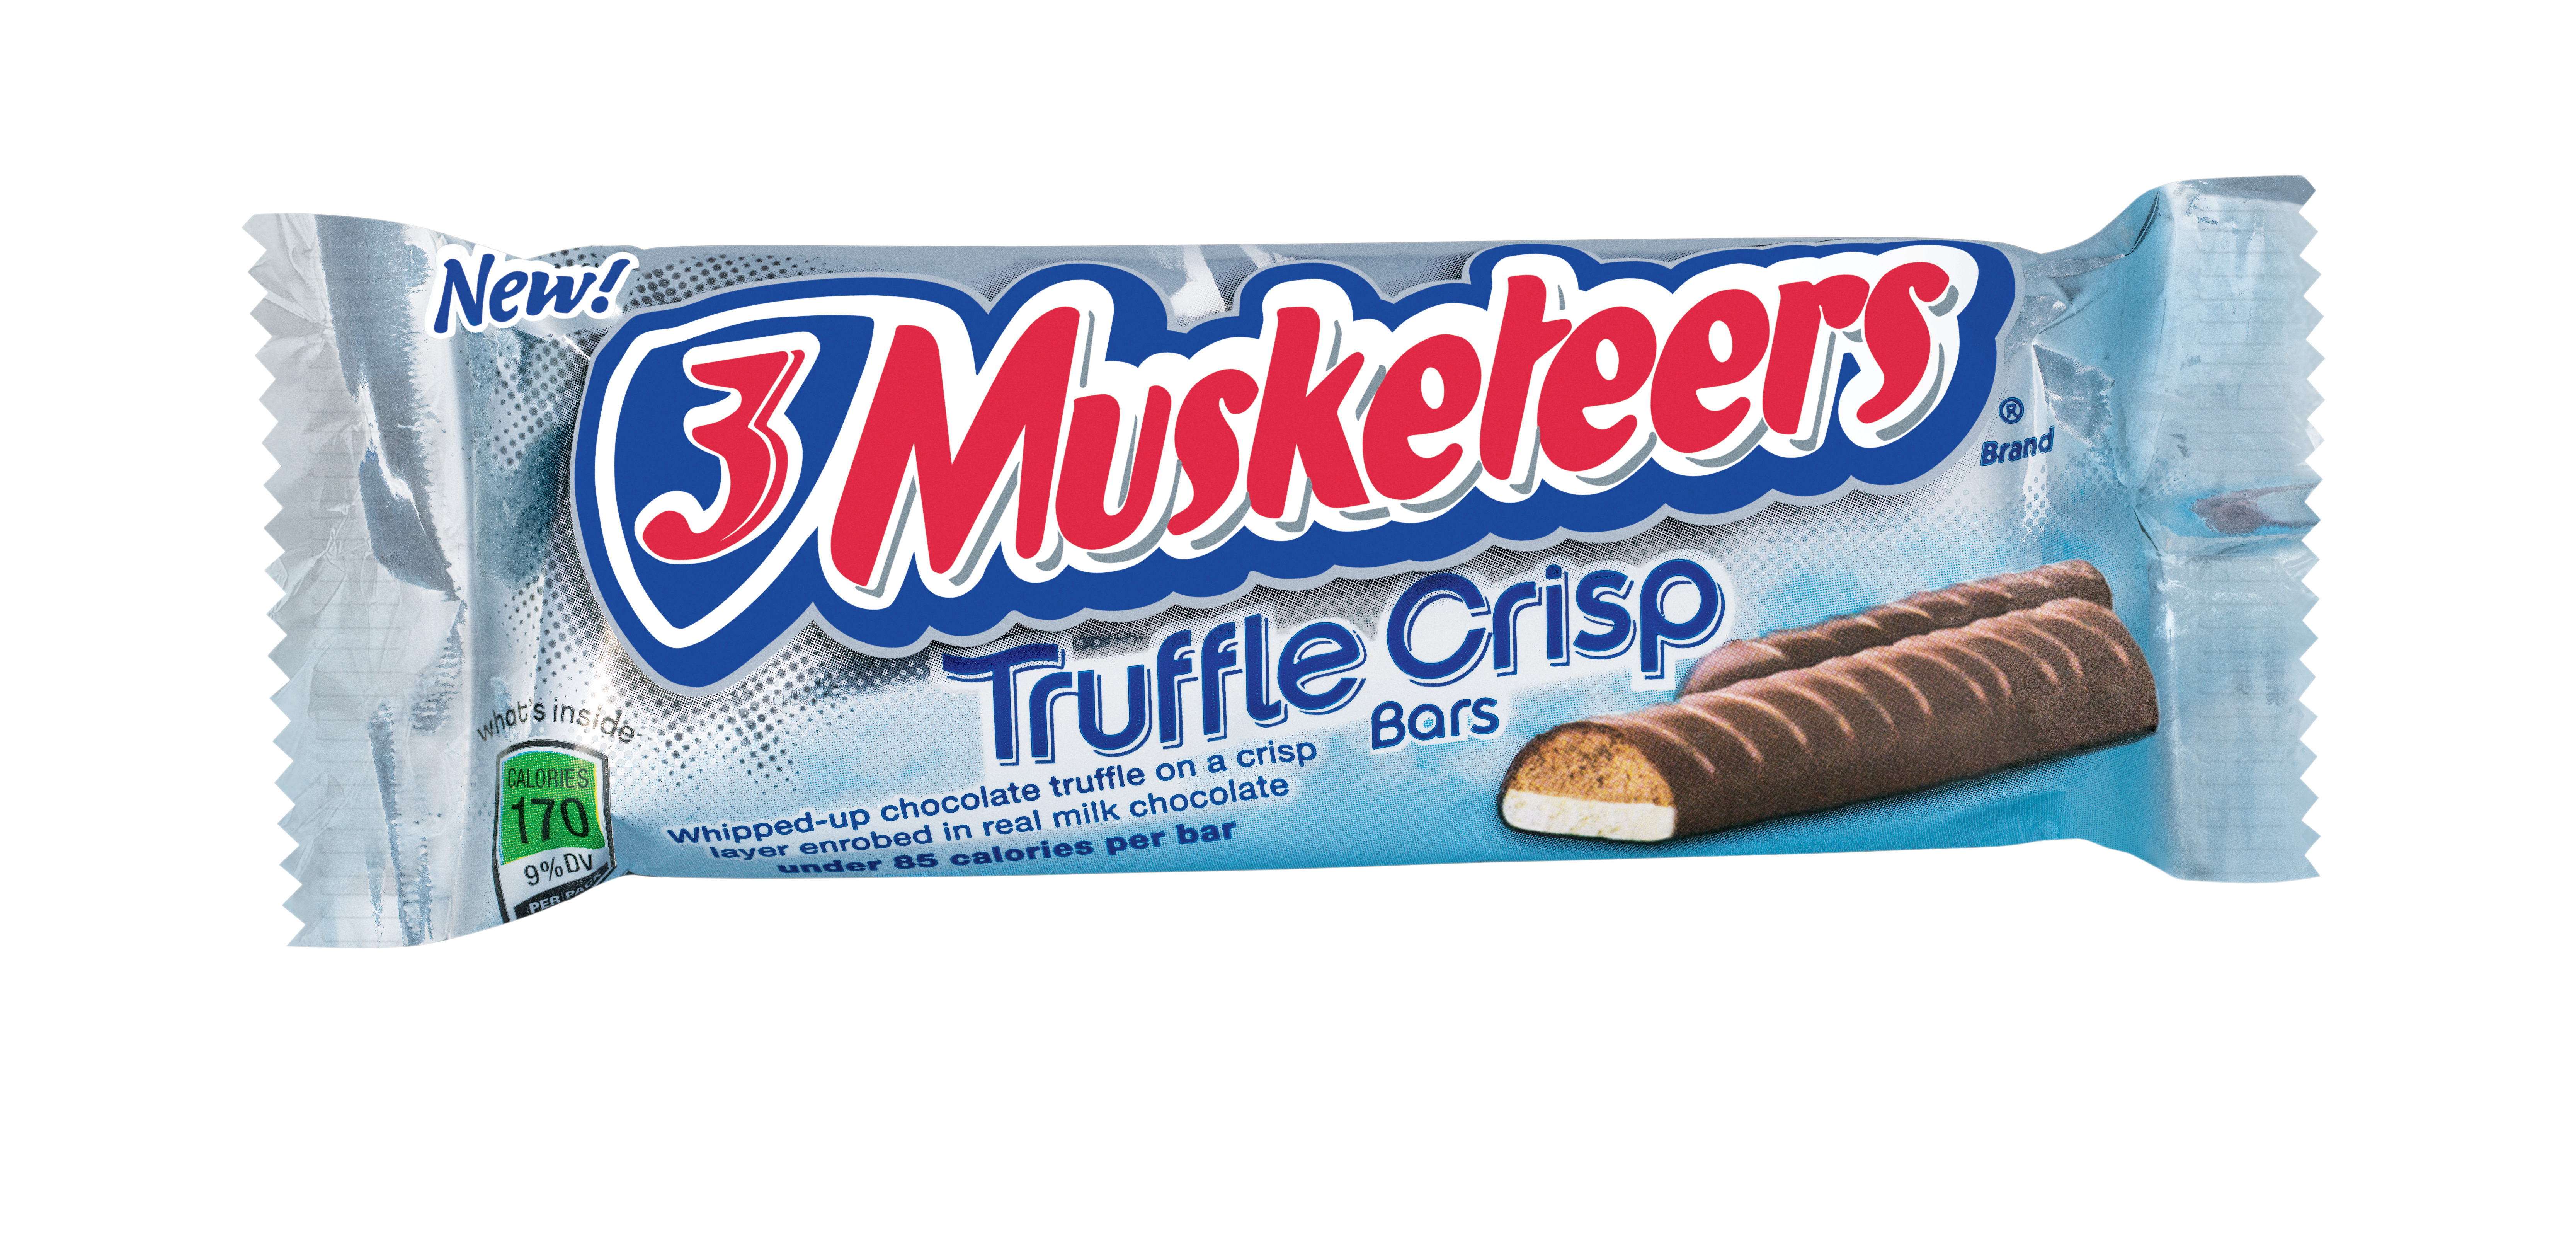 3 Musketeers Truffle Crisp Candy Bar Review - No Time Mommy